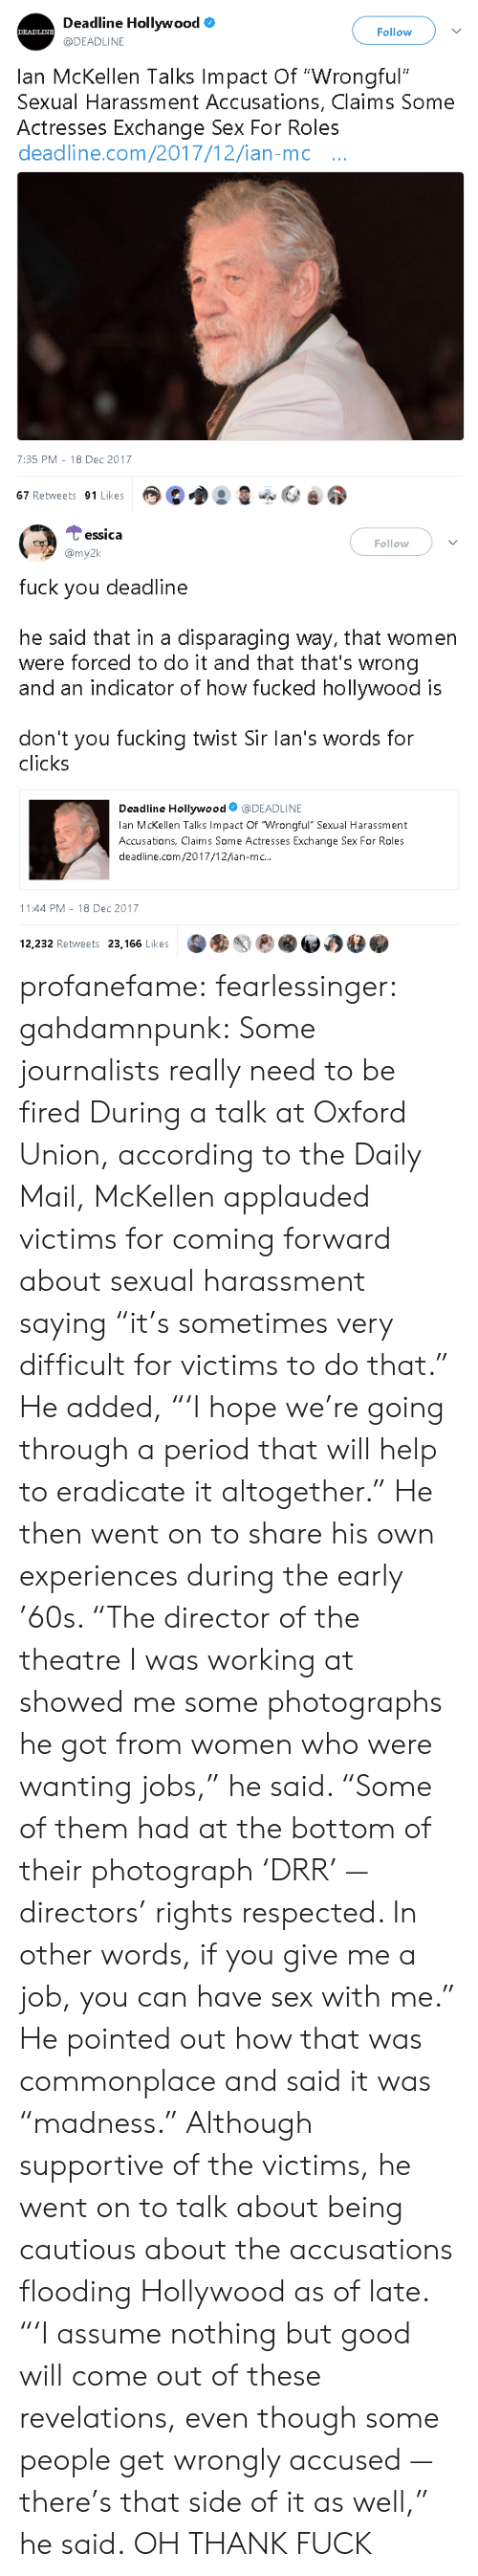 """revelations: Deadline Hollywood  @DEADLINE  DEADLINE  Follow  lan McKellen Talks Impact Of """"Wrongful""""  Sexual Harassment Accusations, Claims Some  Actresses Exchange Sex For Roles  deadline.com/2017/12/ian-mc ..  7:35 PM - 18 Dec 2017  67 Retweets 91 Likes   Cessica  my2k  Follow  fuck you deadline  he said that in a disparaging way, that women  were forced to do it and that that's wrong  and an indicator of how fucked hollywood is  don't you fucking twist Sir lan's words for  clicks  Deadline Hollywood@DEADLINE  lan McKellen Talks Impact Of Wrongful"""" Sexual Harassment  Accusations, Claims Some Actresses Exchange Sex For Roles  deadline.com/2017/12/ian-mc..  11:44 PM-18 Dec 2017  12,232 Retweets 23,166 Likes profanefame: fearlessinger:  gahdamnpunk: Some journalists really need to be fired  During a talk at Oxford Union, according to the Daily Mail, McKellen applauded victims for coming forward about sexual harassment saying """"it's sometimes very difficult for victims to do that."""" He added, """"'I hope we're going through a period that will help to eradicate it altogether."""" He then went on to share his own experiences during the early '60s. """"The director of the theatre I was working at showed me some photographs he got from women who were wanting jobs,"""" he said. """"Some of them had at the bottom of their photograph 'DRR' — directors' rights respected. In other words, if you give me a job, you can have sex with me."""" He pointed out how that was commonplace and said it was """"madness."""" Although supportive of the victims, he went on to talk about being cautious about the accusations flooding Hollywood as of late. """"'I assume nothing but good will come out of these revelations, even though some people get wrongly accused — there's that side of it as well,"""" he said.   OH THANK FUCK"""